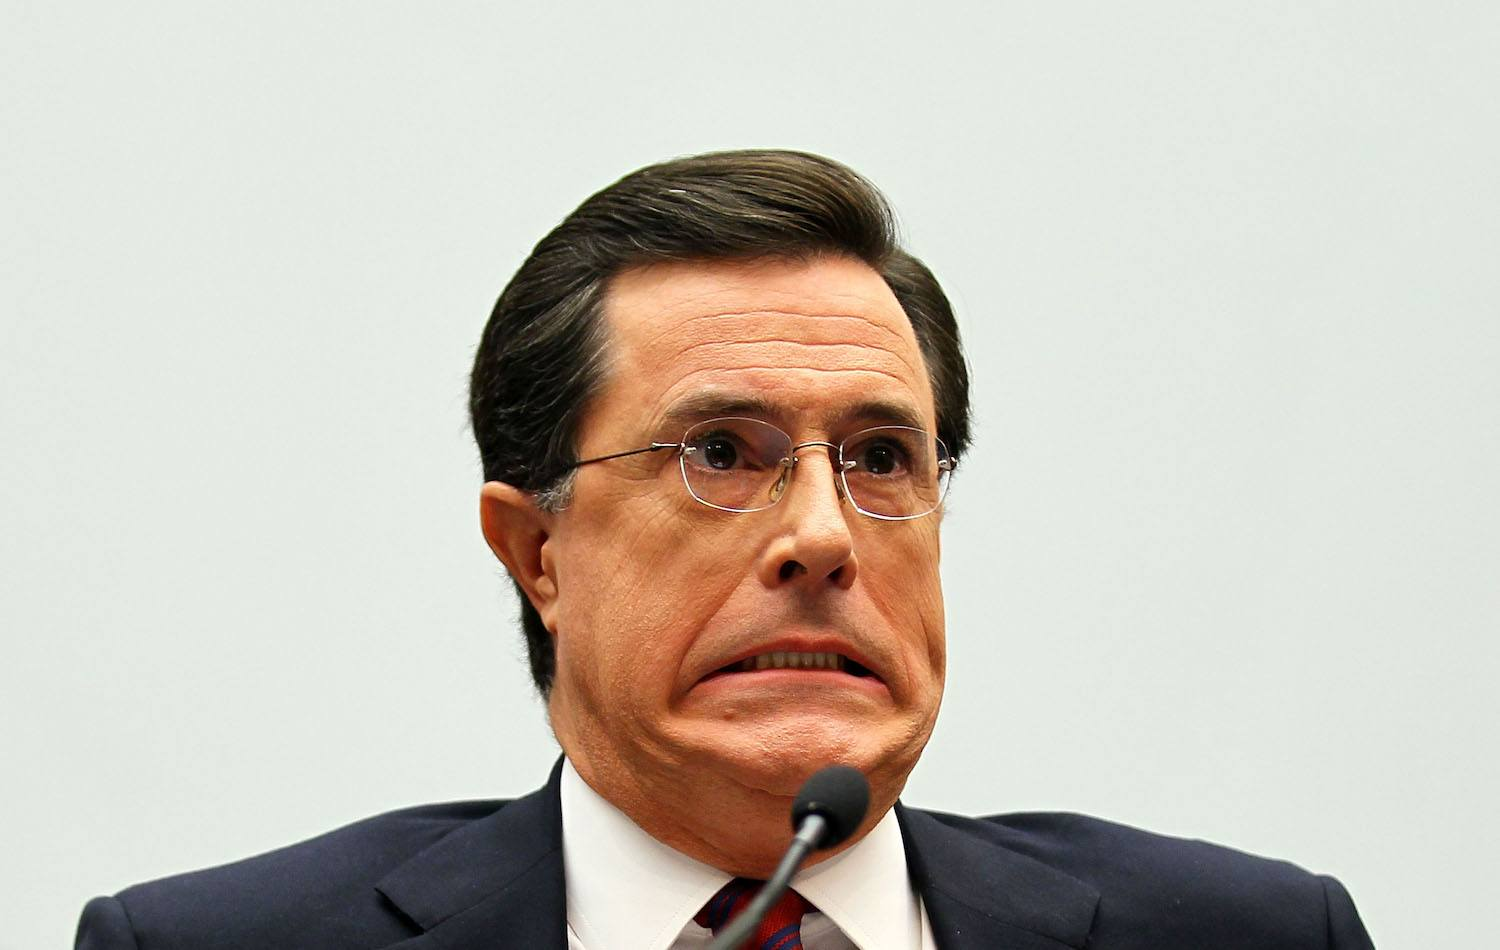 Stephen Colbert makes a face while talking into a mic